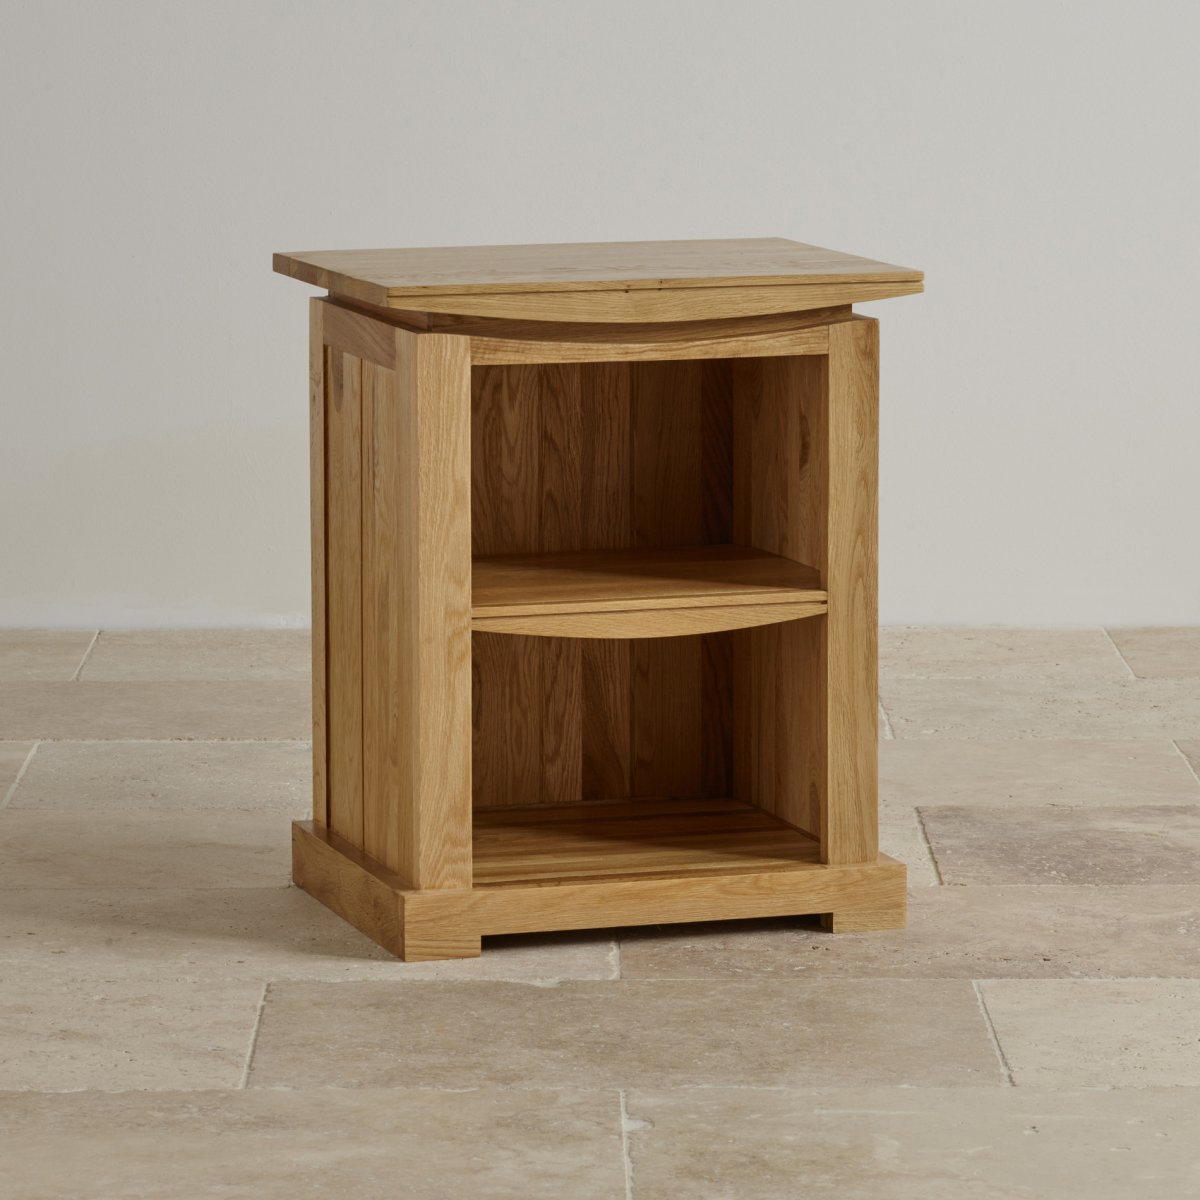 Tokyo bedside table in natural solid oak oak furniture land for Solid oak furniture